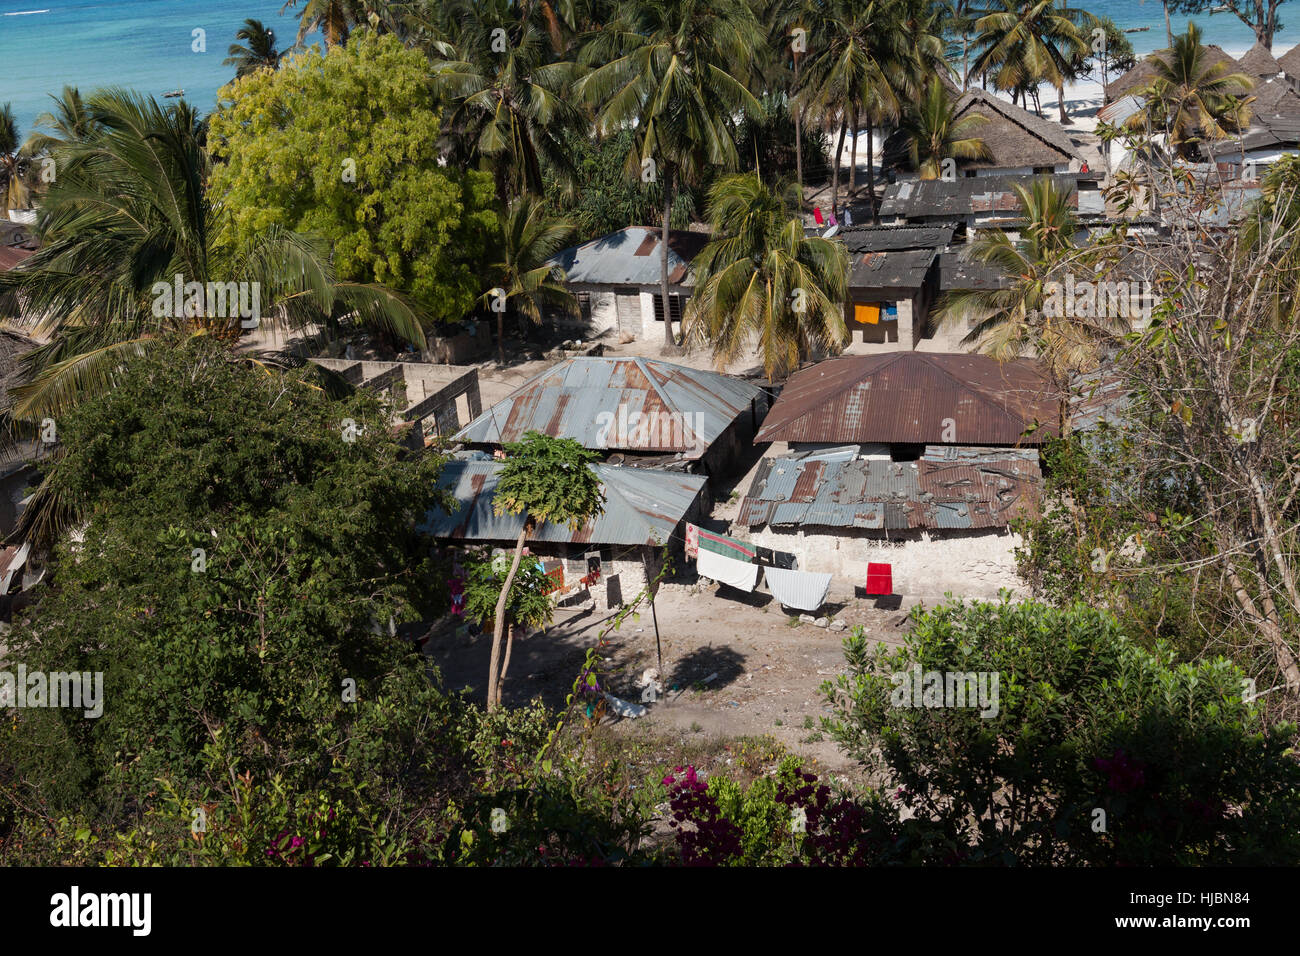 Poorest Part Of Coast Village Simple Houses Azure Sea Palms In - Poorest part of africa